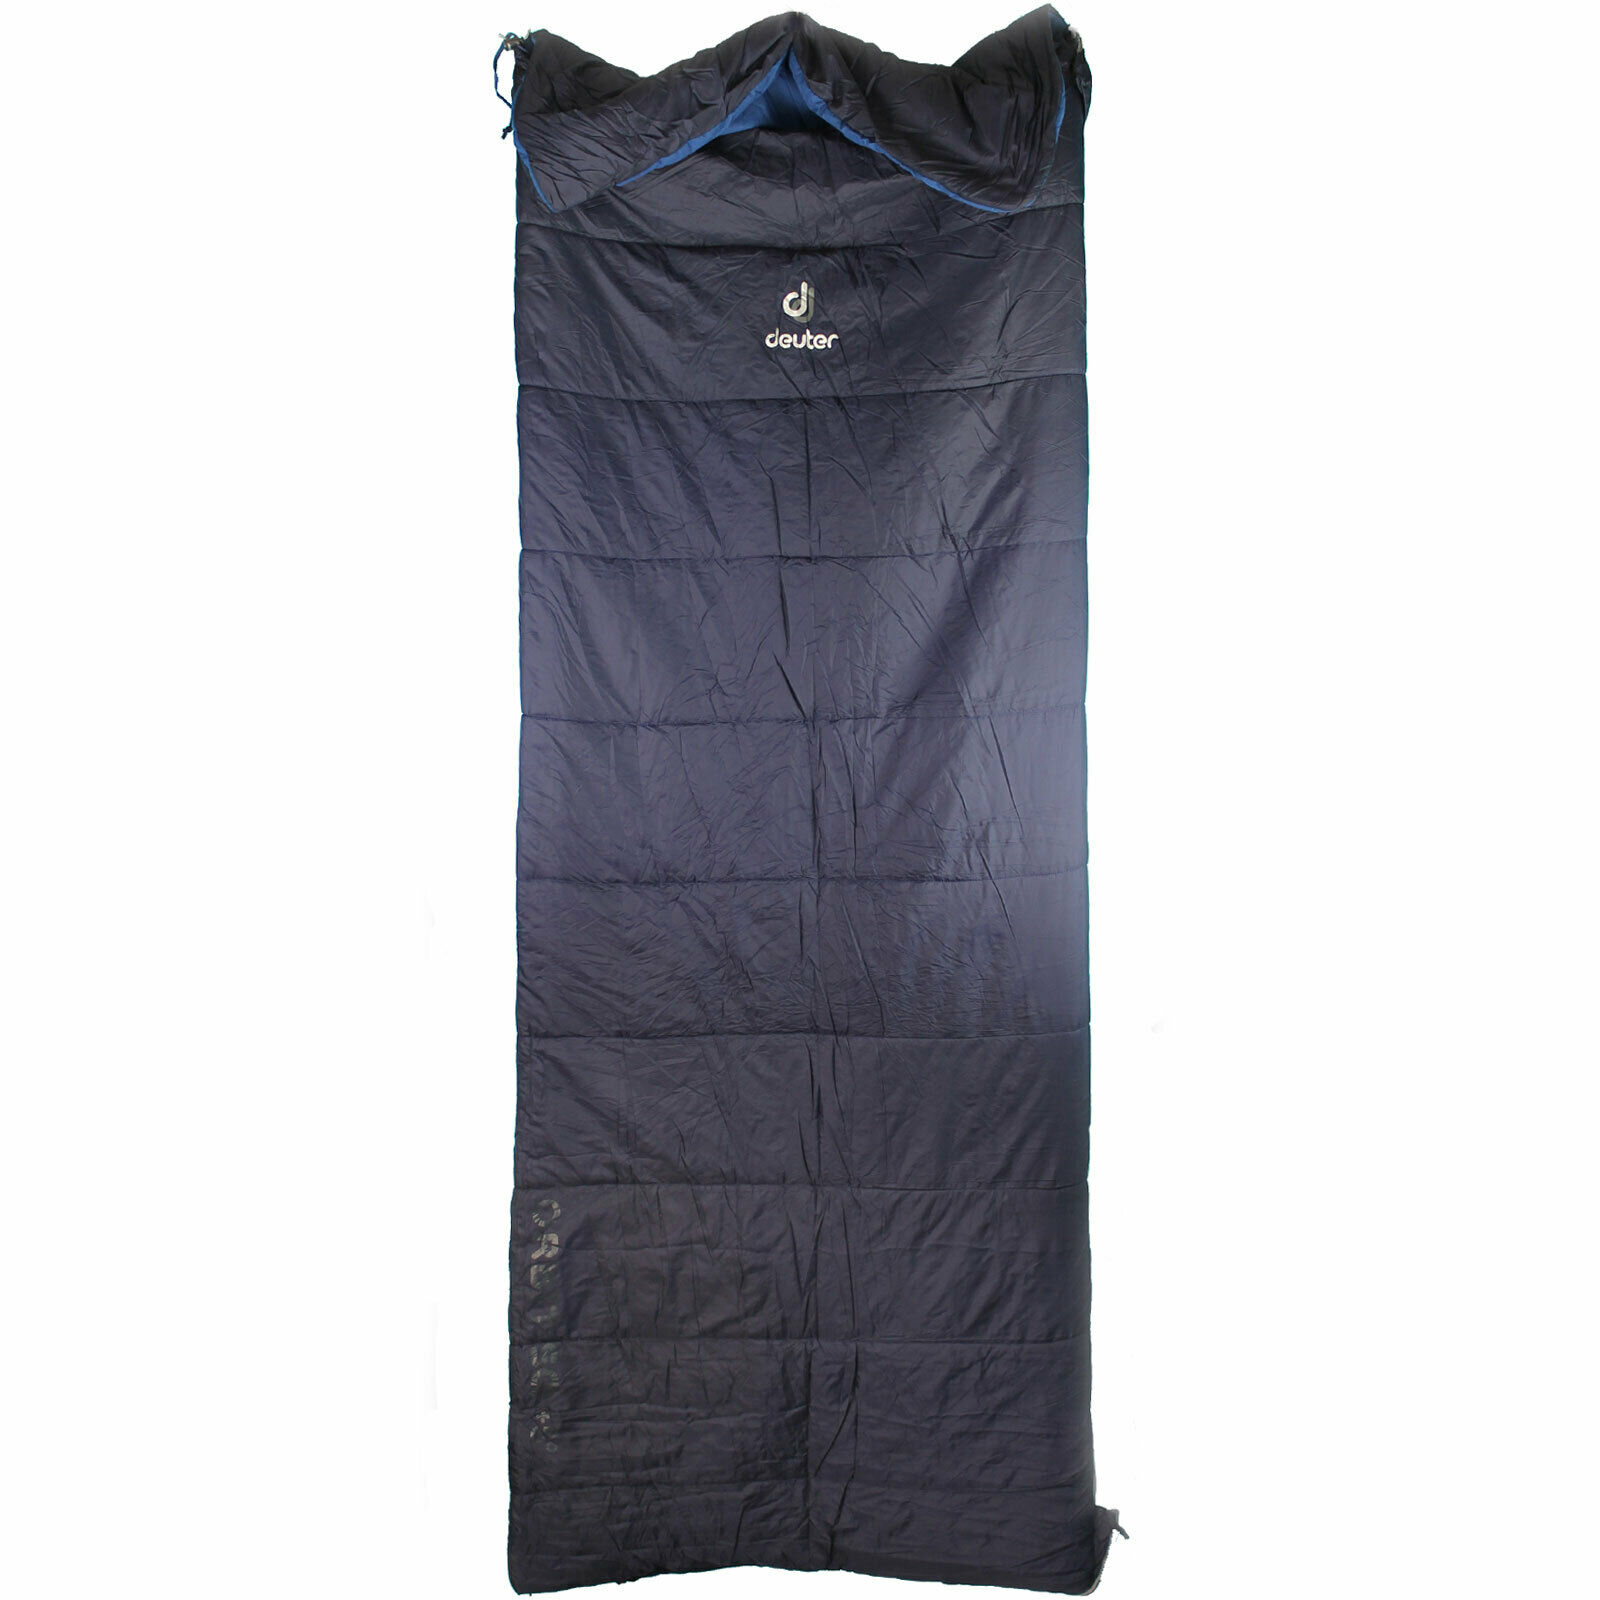 Deuter Orbit Sq Sleeping Bag  Mummy Bags Rectangular New  large selection